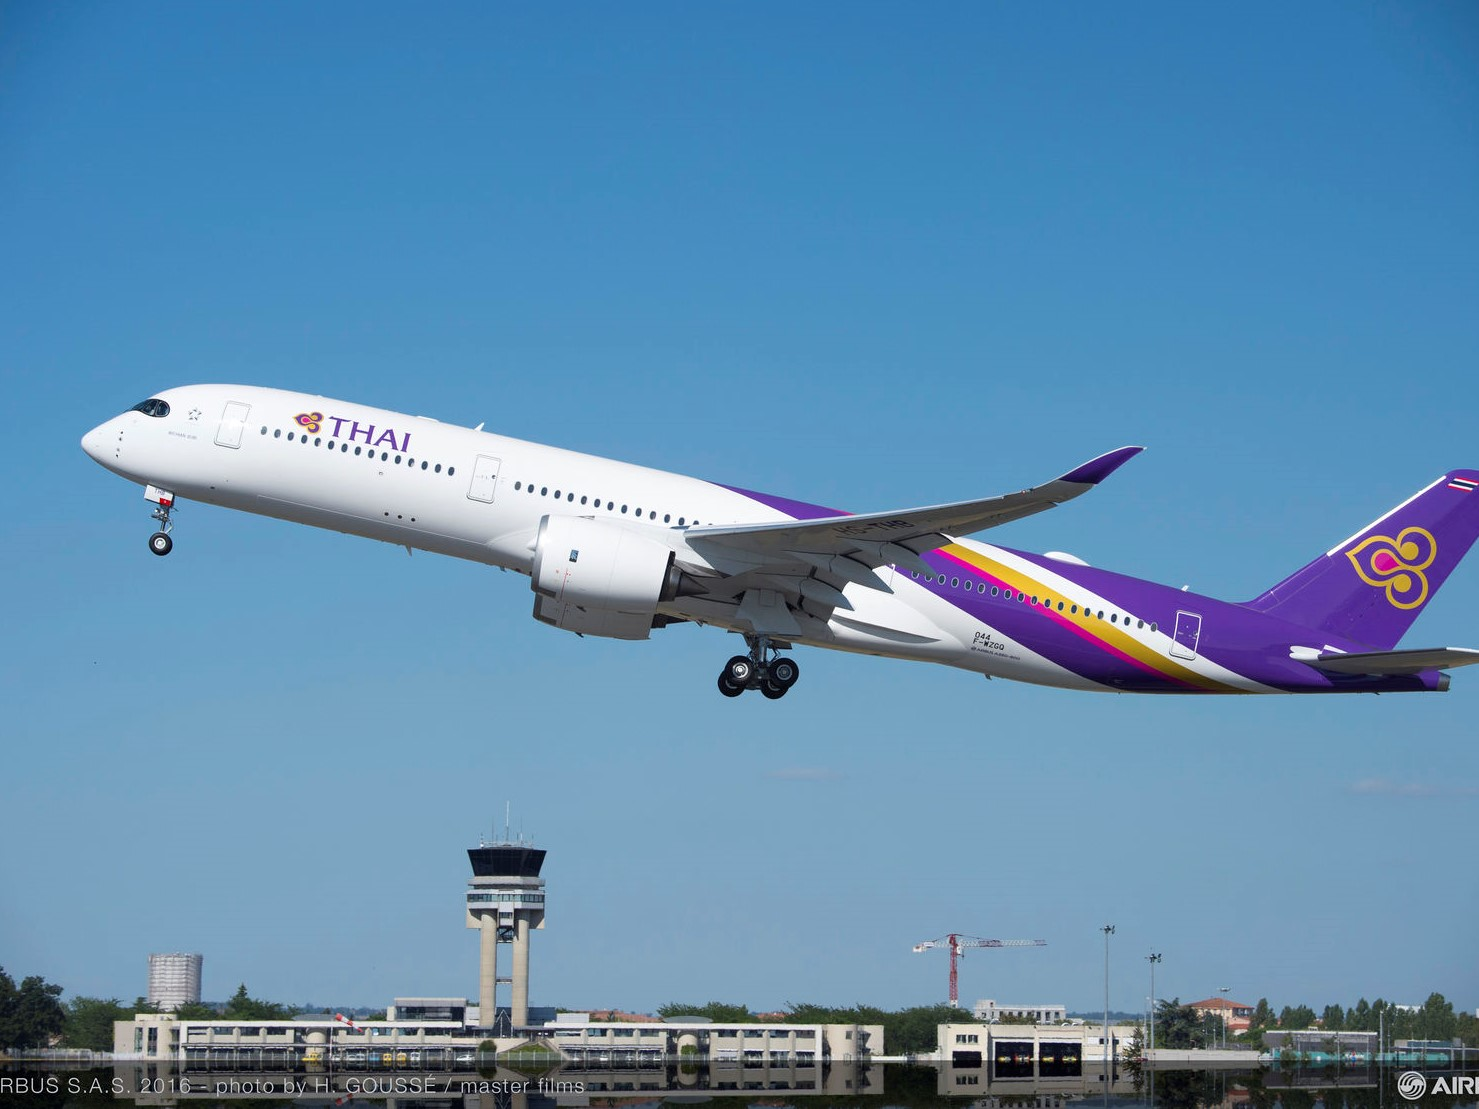 Airbus and Thai Airways discuss MRO joint venture